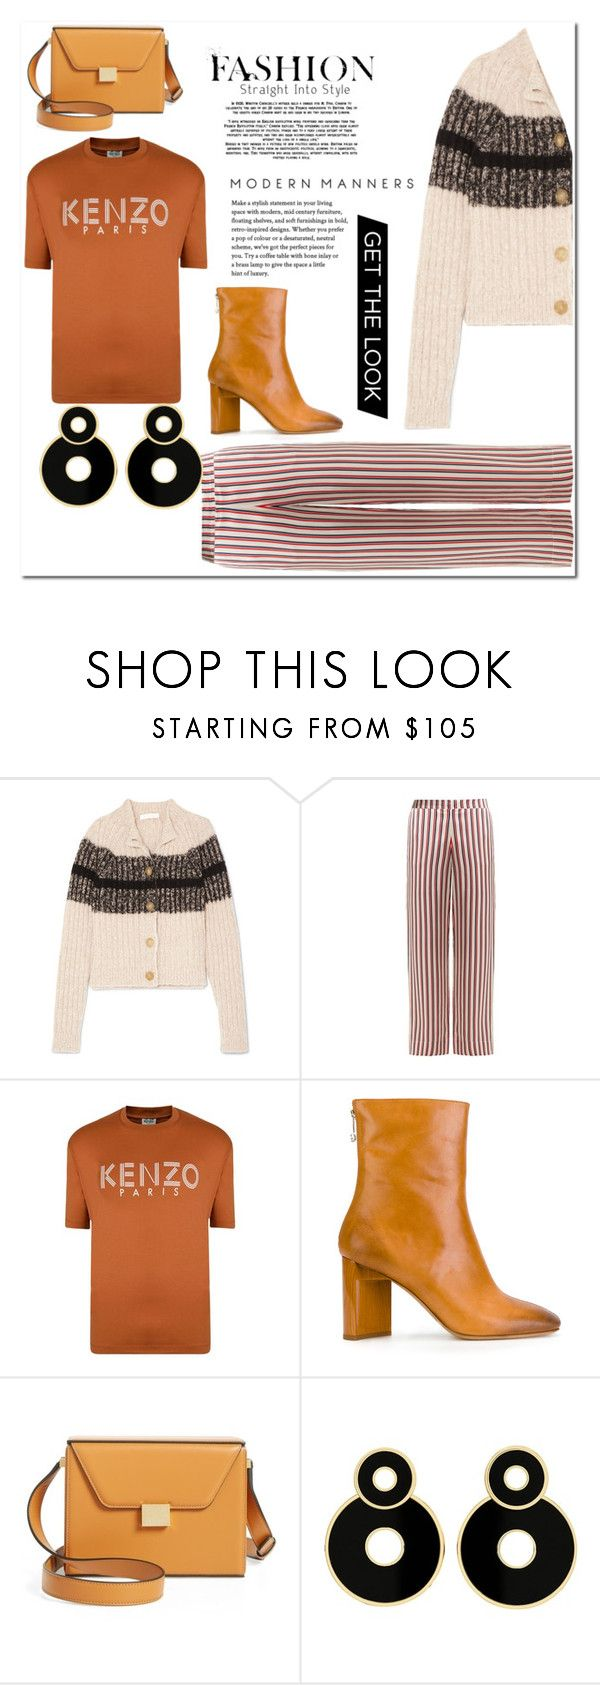 """""""Skripsi On Stripe"""" by muhammadtanim ❤ liked on Polyvore featuring Chloé, Asceno, Kenzo, Maison Margiela and Victoria Beckham"""